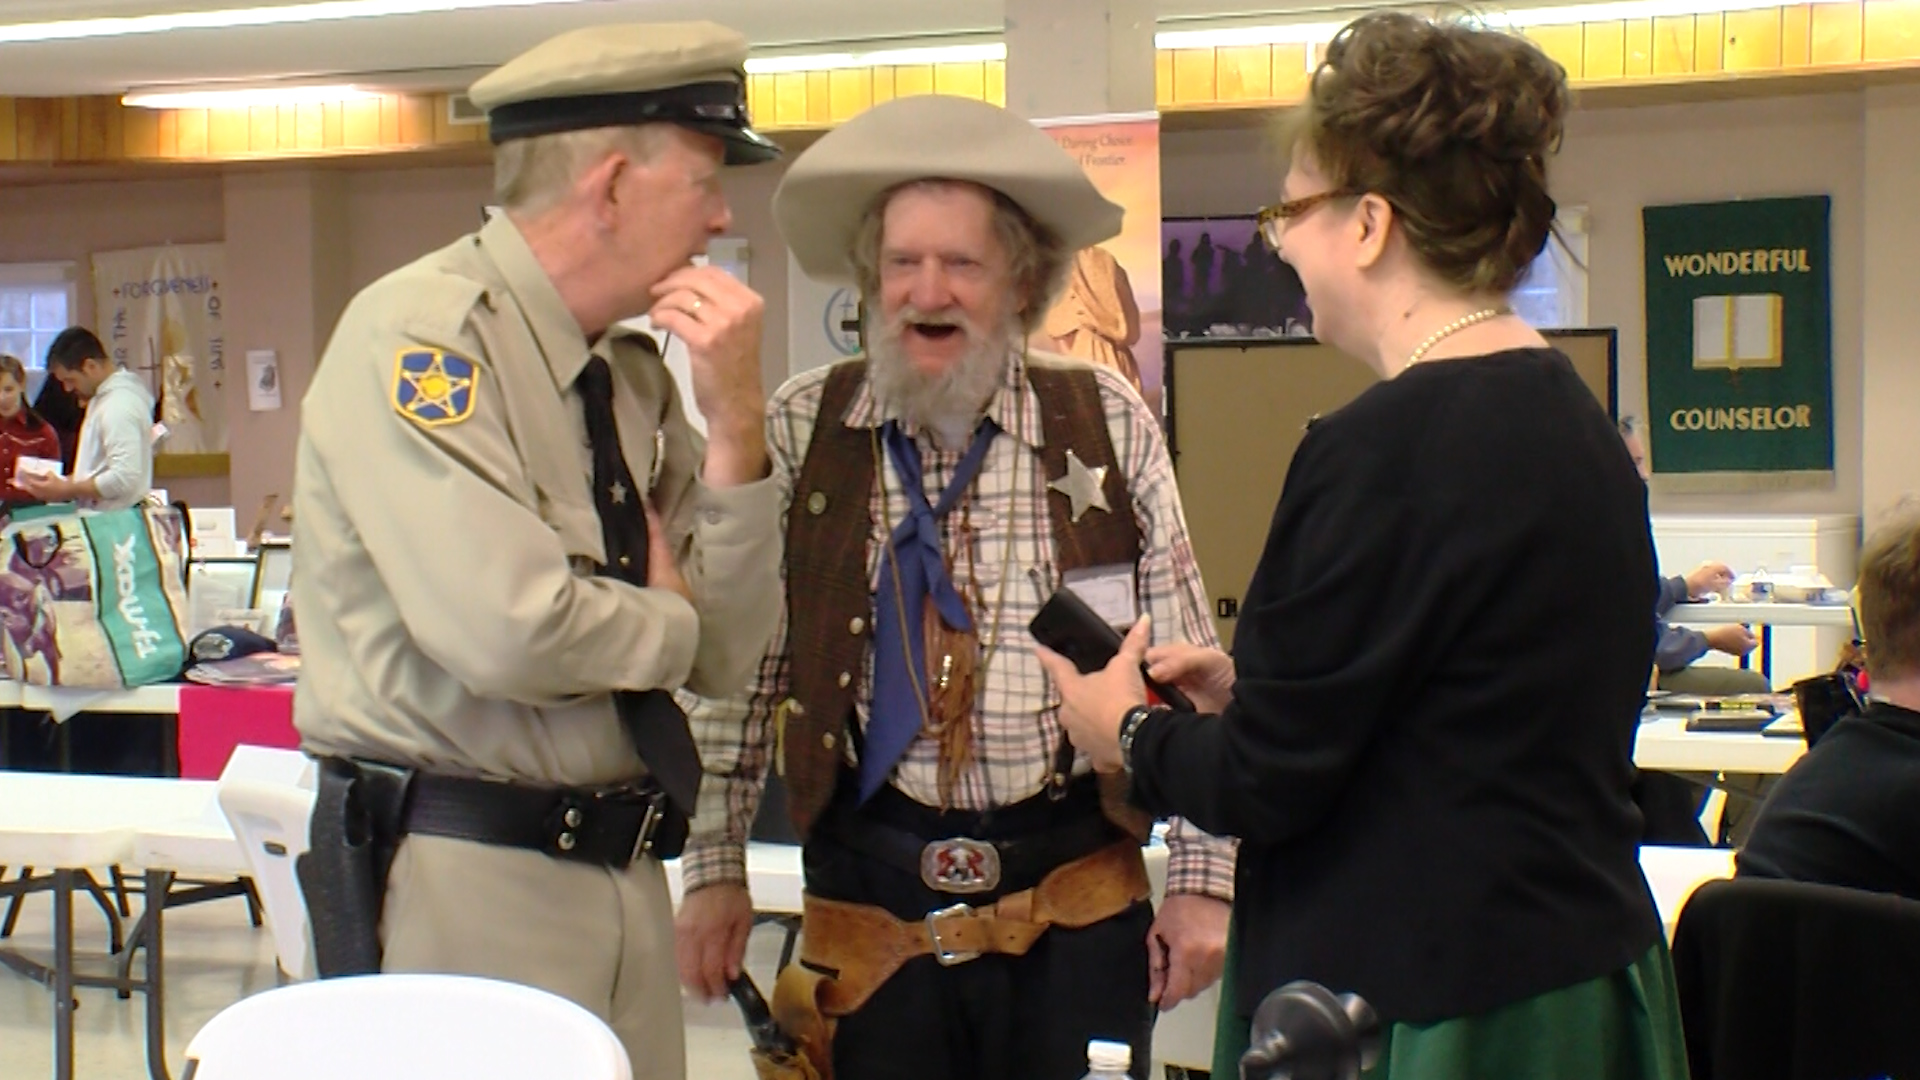 Fans and celebrities interact at the Happy Trails media convention